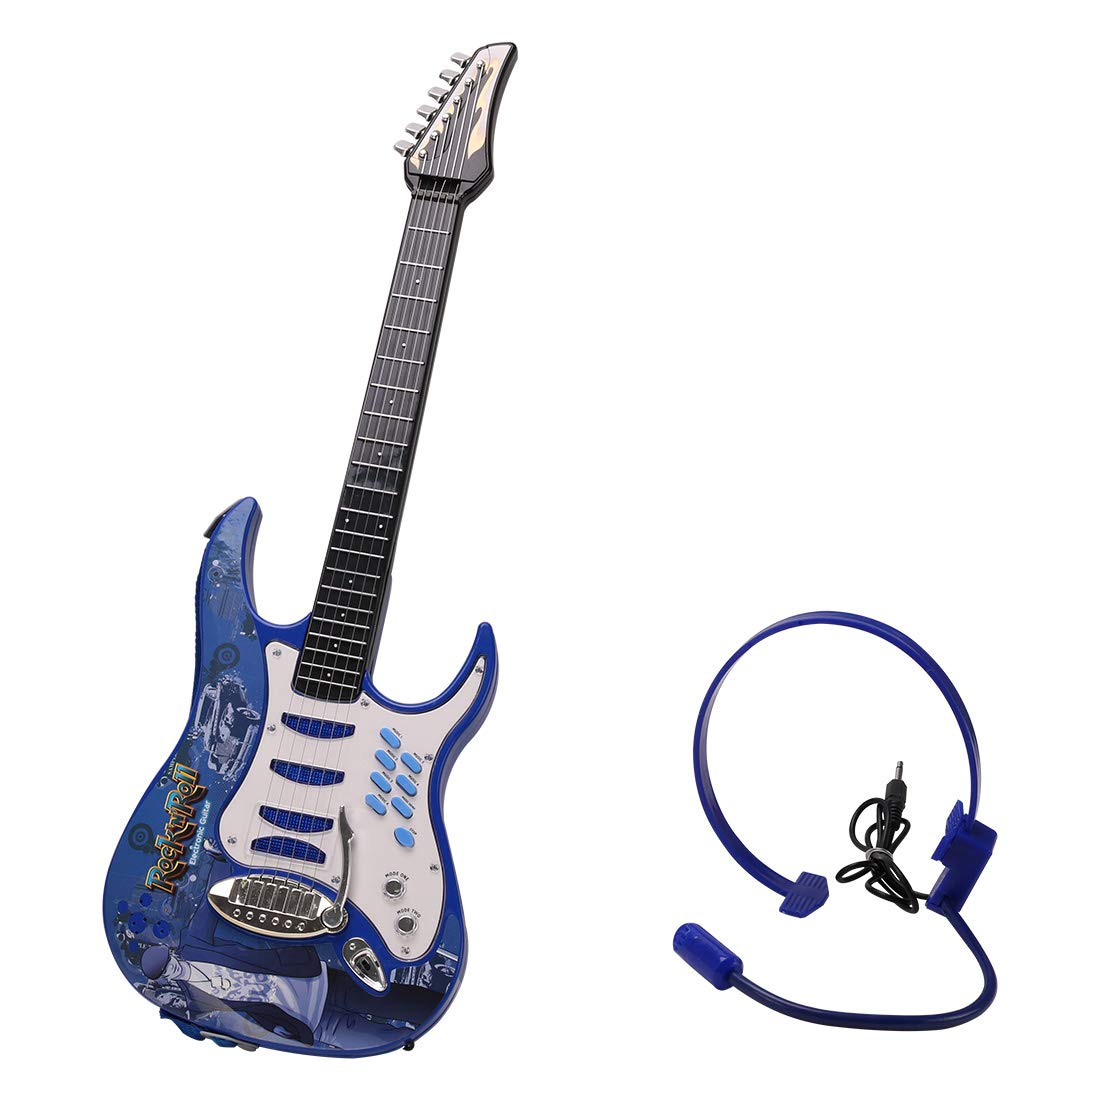 Amazon.com: WOLFBUSH Electric Guitar for Children 6 Strings Guitar Toy with Earphone Early Educational Musical Instrument Toy for Toddler Boys Girls, ...